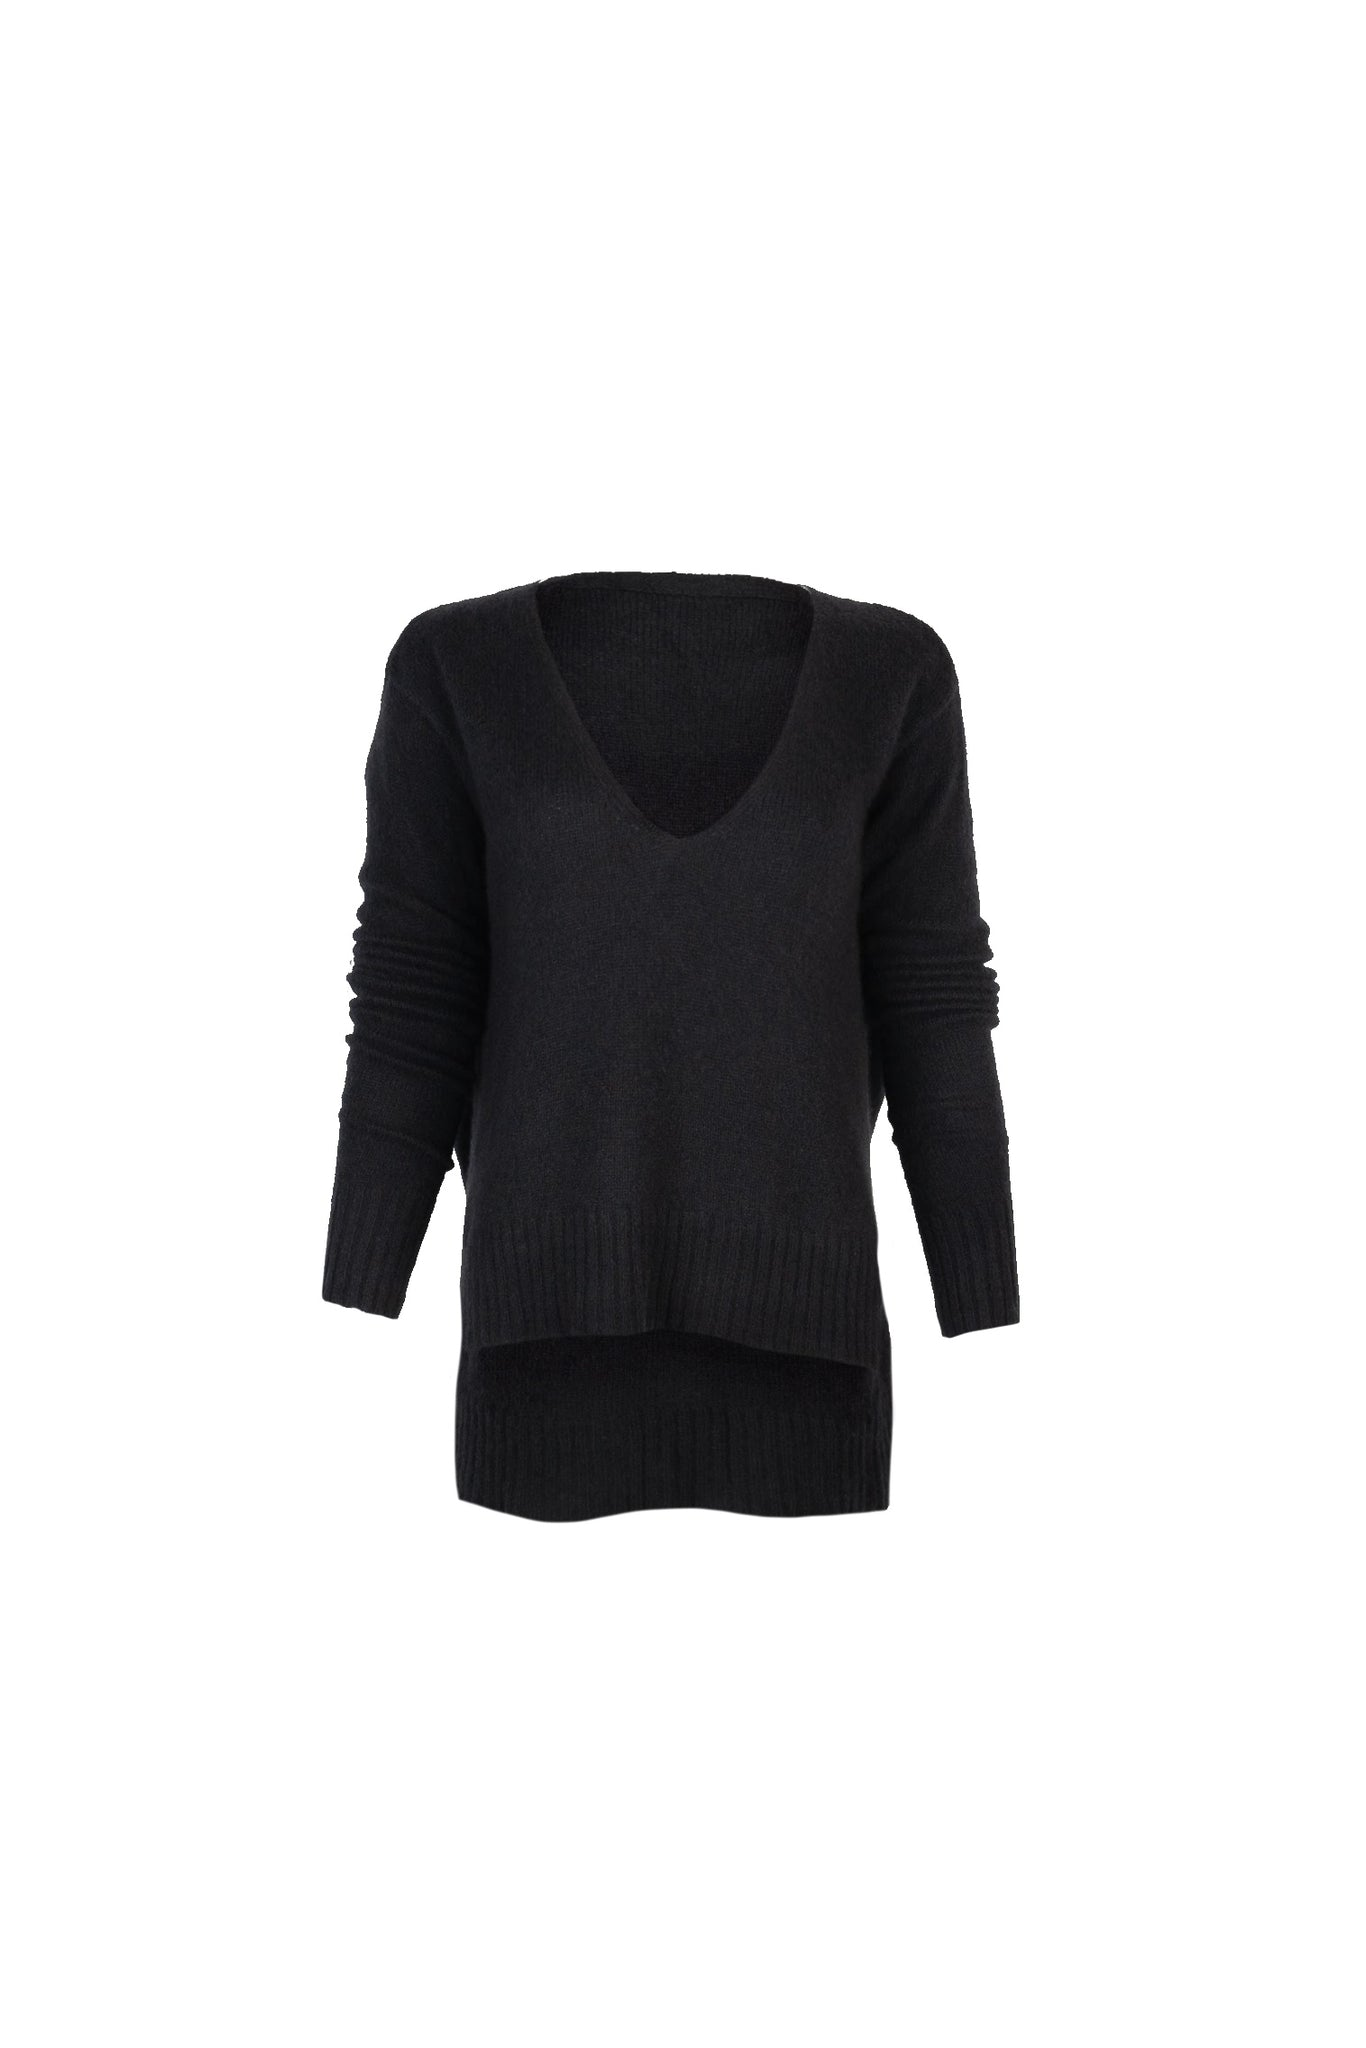 KES x Lars Nimbus V-Neck Sweater - Black